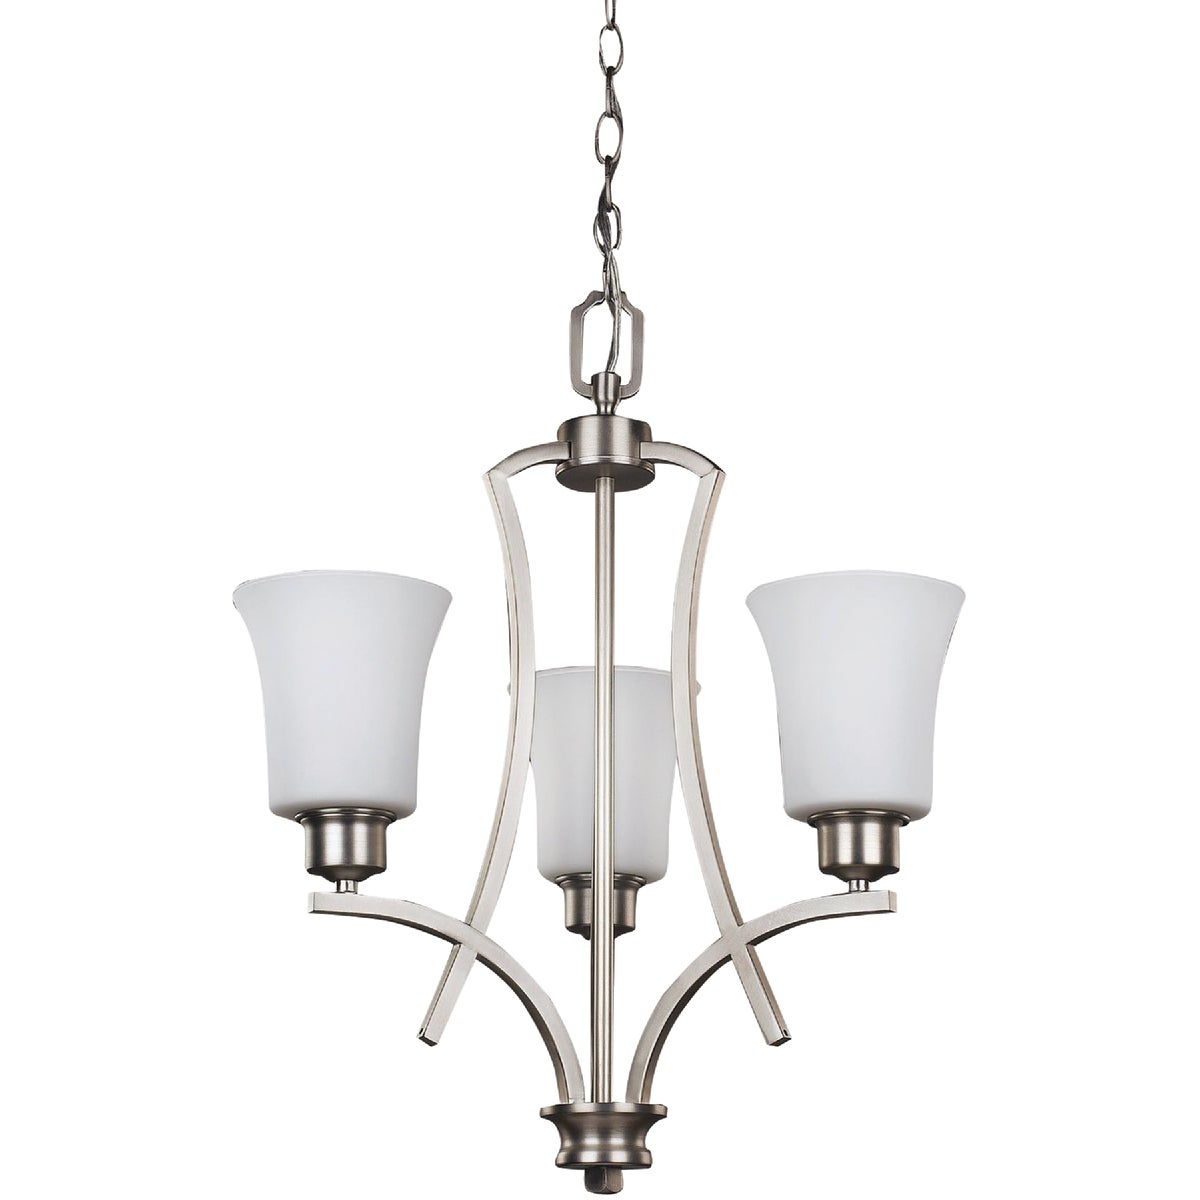 3 BULB NICKEL CHANDELIER - RICH250A03BN by Canarm Gs